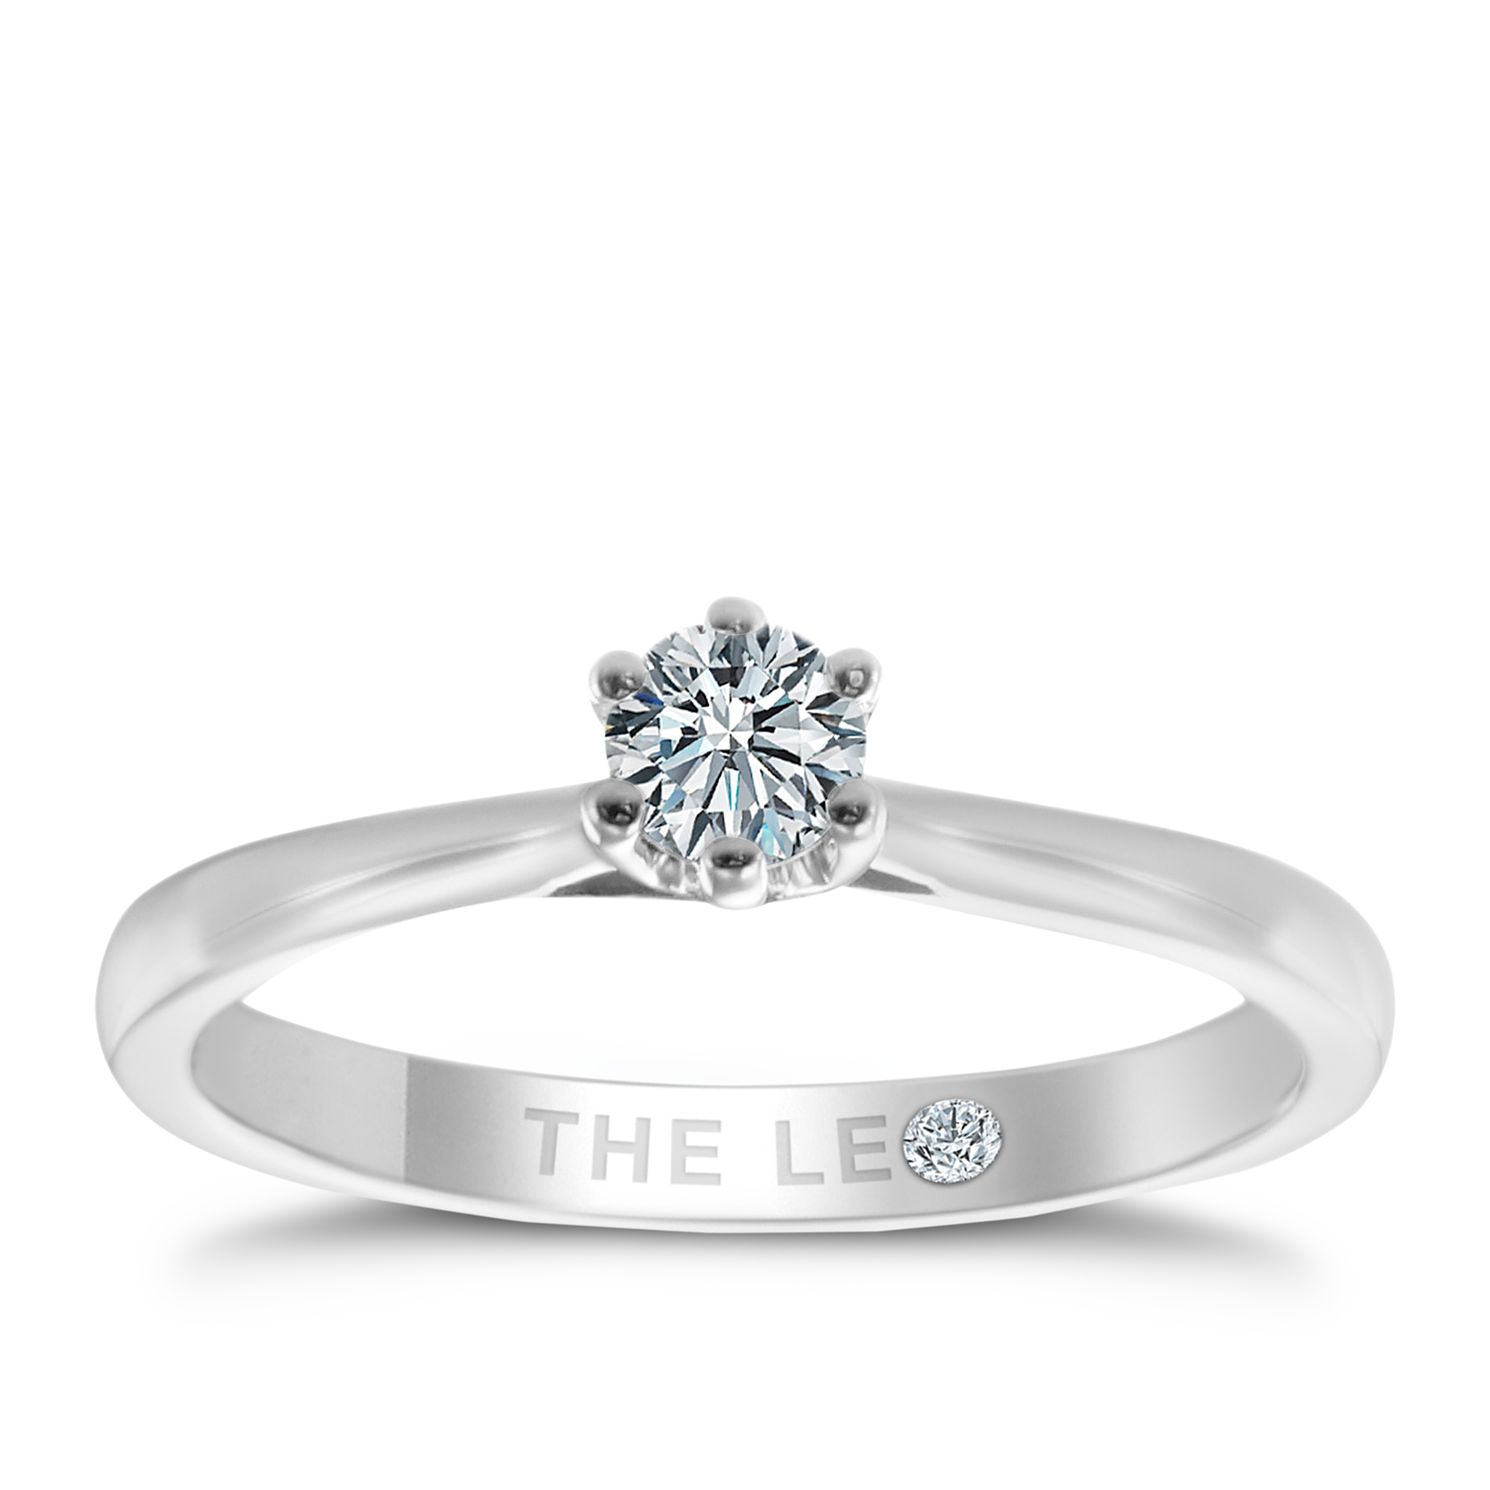 Leo Diamond 18ct White Gold 1/5ct ct I-P1 Diamond Ring - Product number 6348629